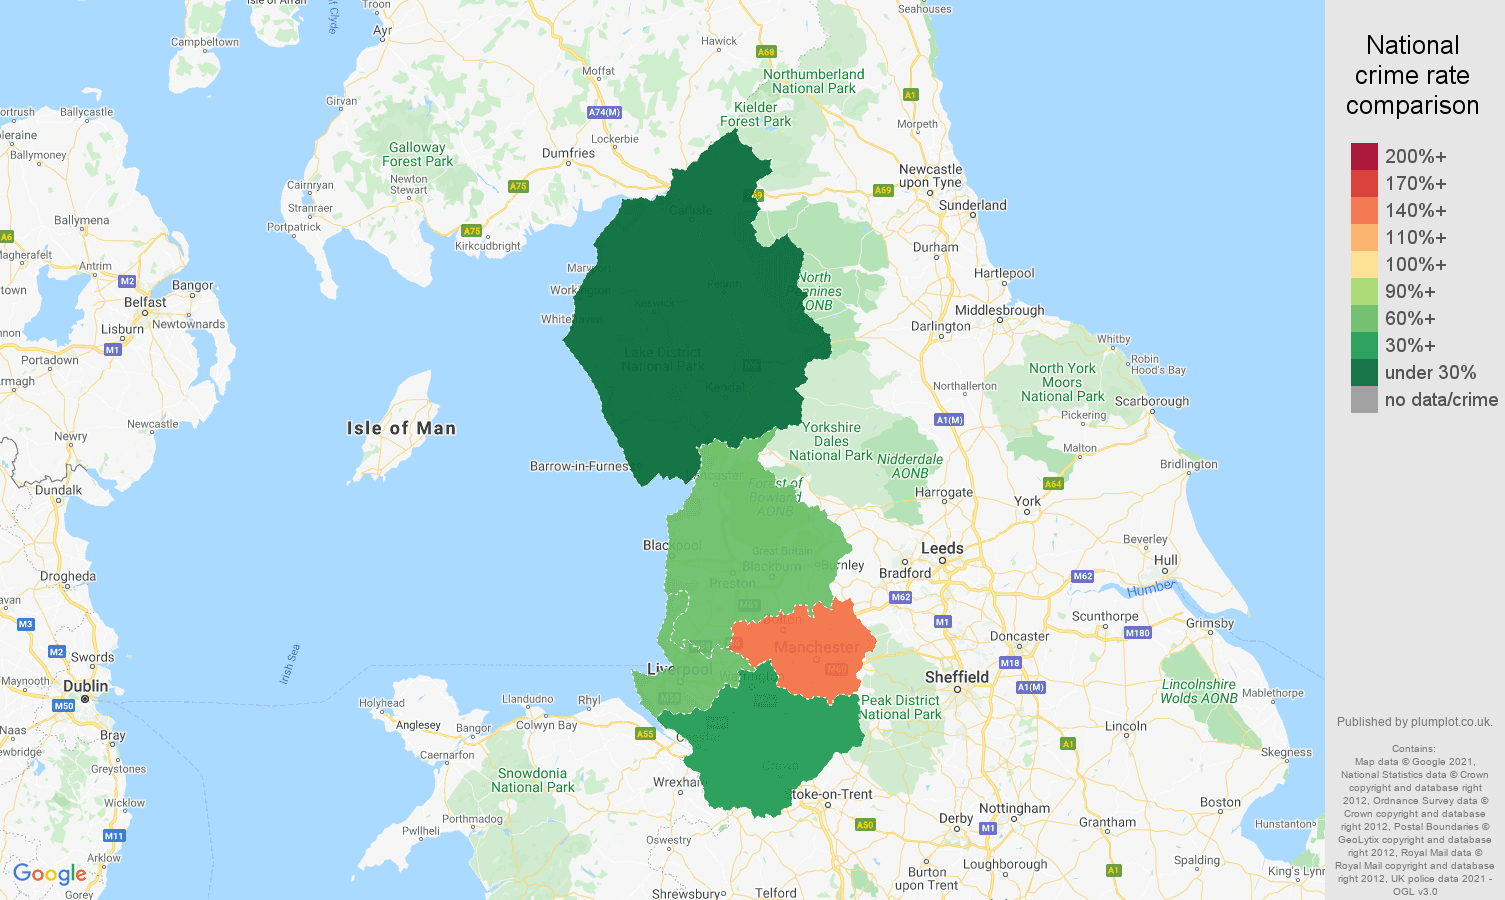 North West theft from the person crime rate comparison map